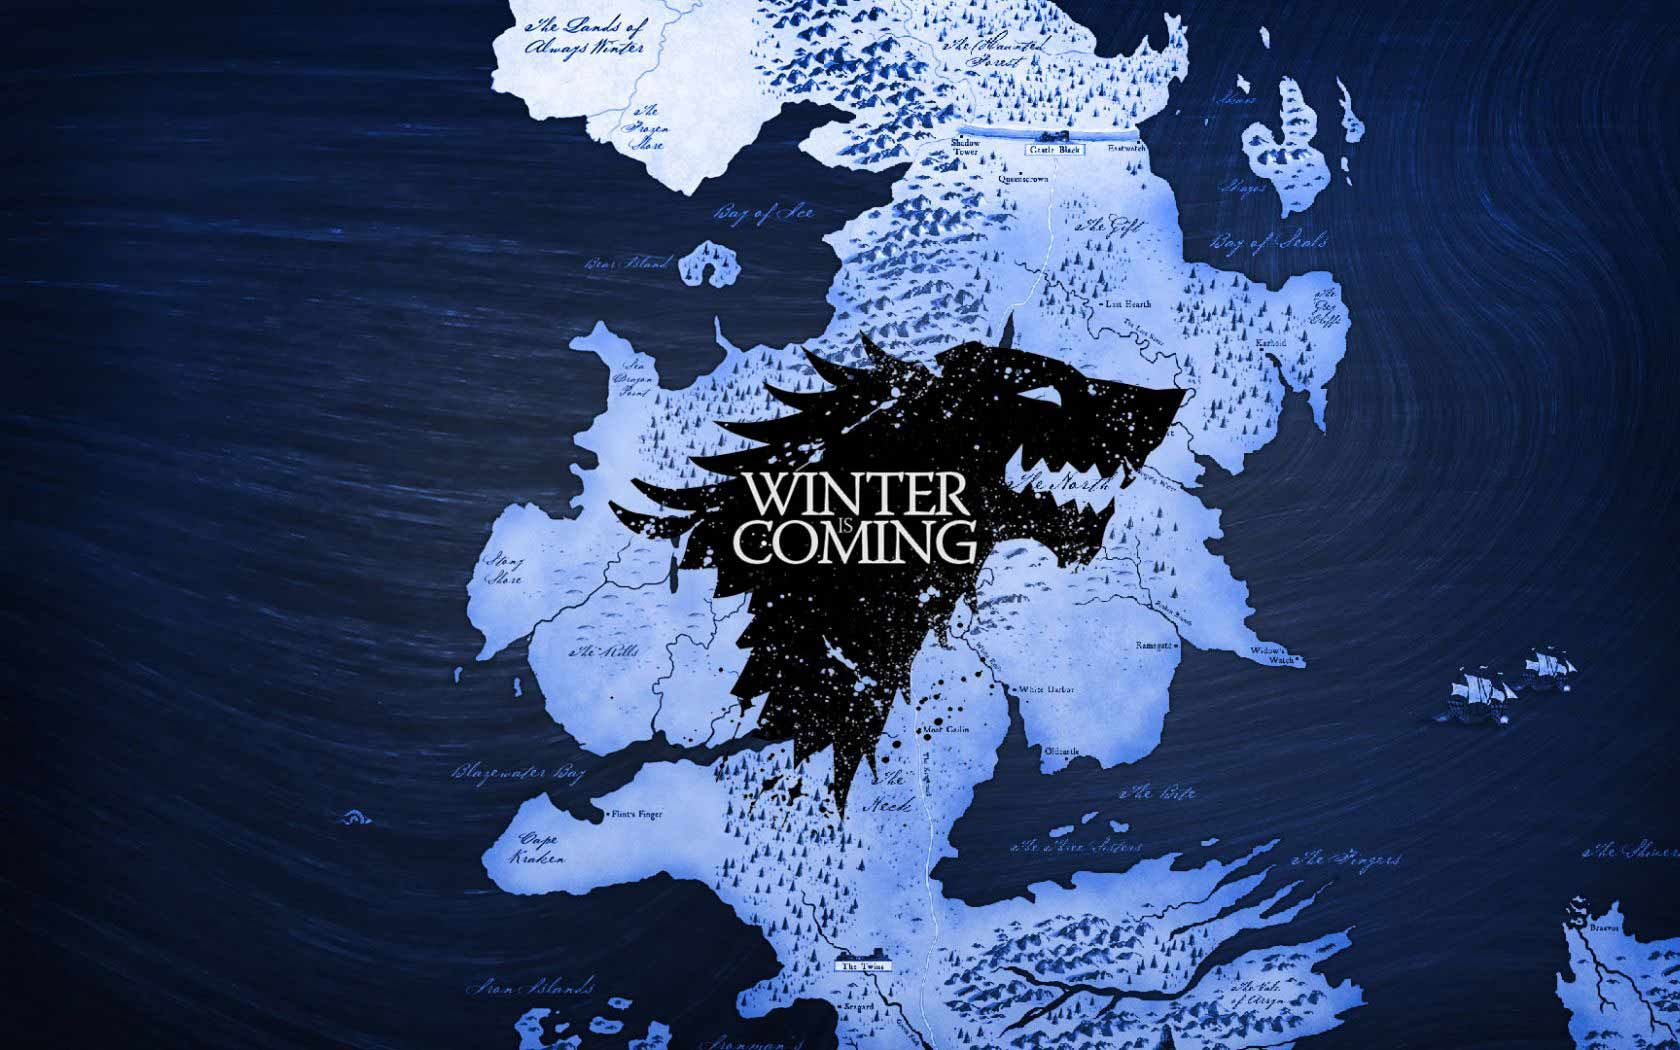 Game of thrones season 4 game of thrones season 4 wallpapers hd game of thrones season 4 game of thrones season 4 wallpapers hd got season 4 desktop voltagebd Images